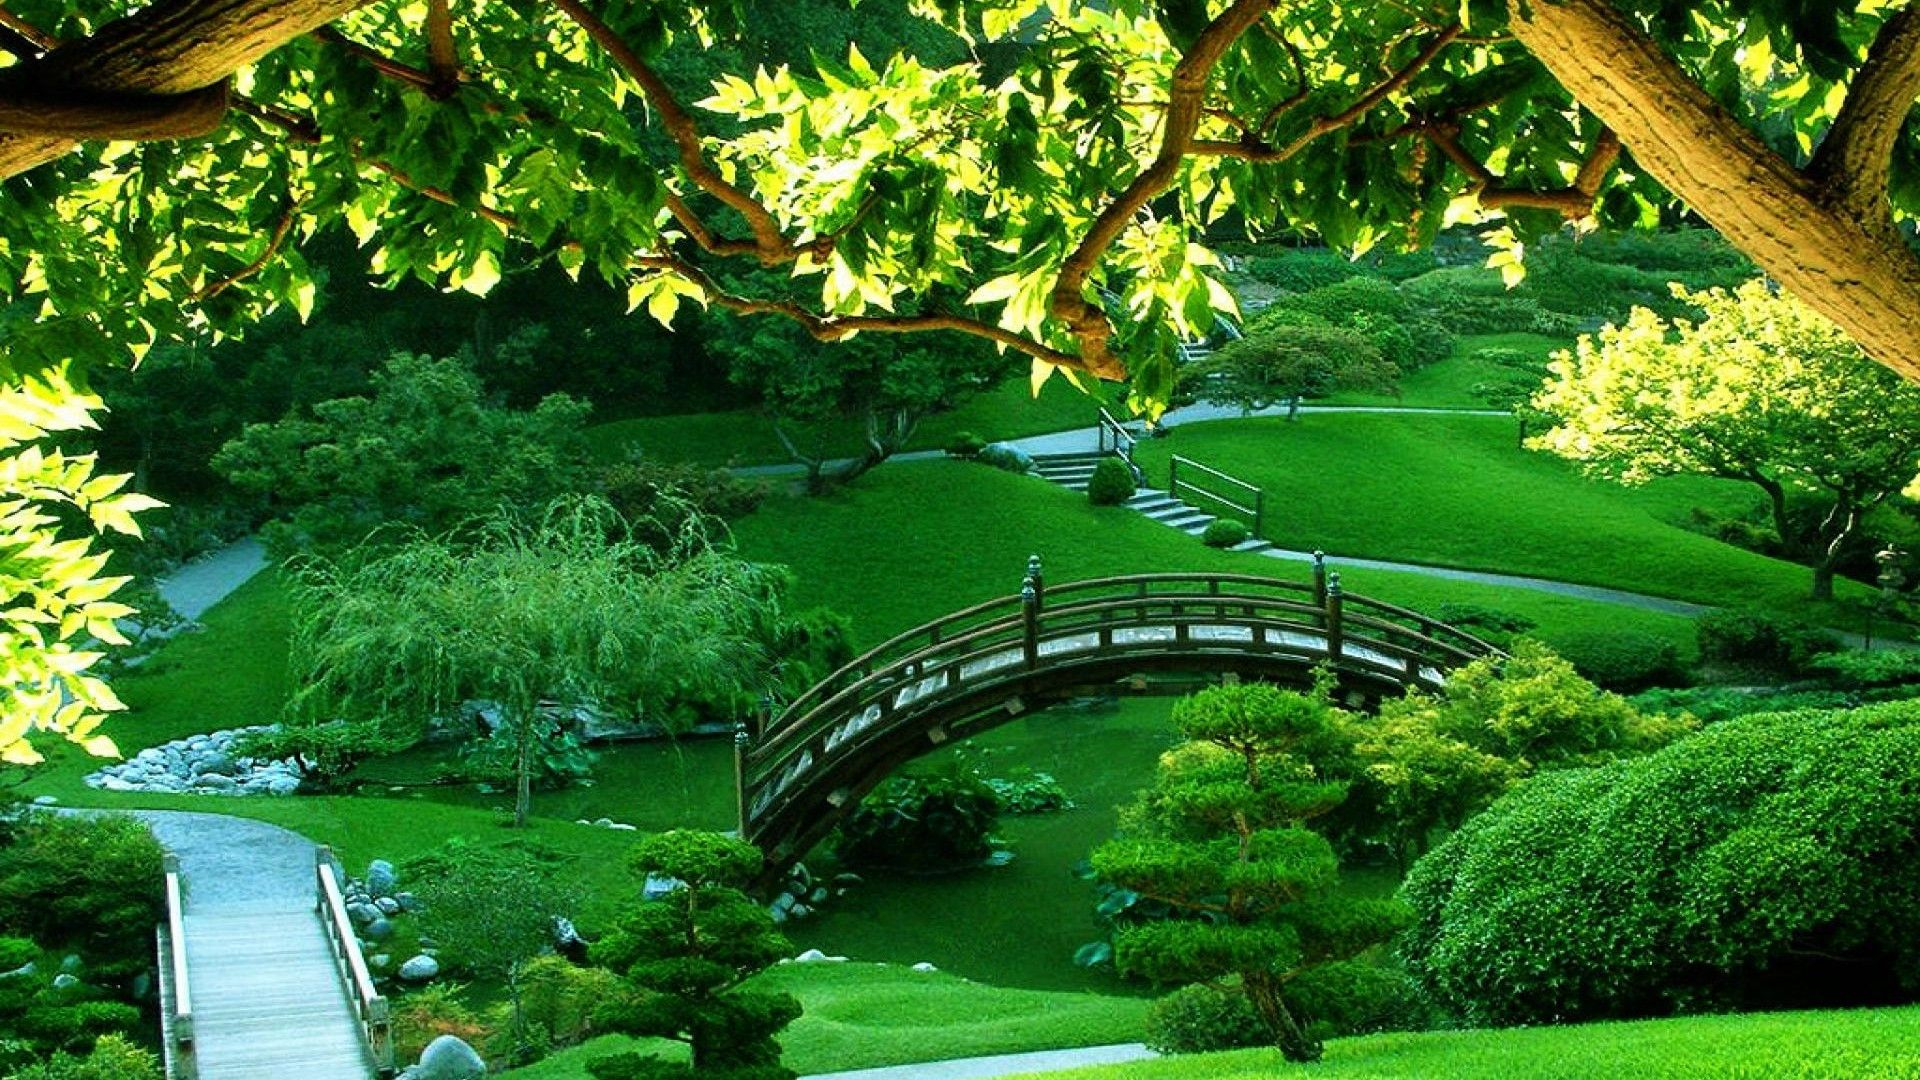 Green Park HD Wallpaper 1920 x 1080 Japanese garden